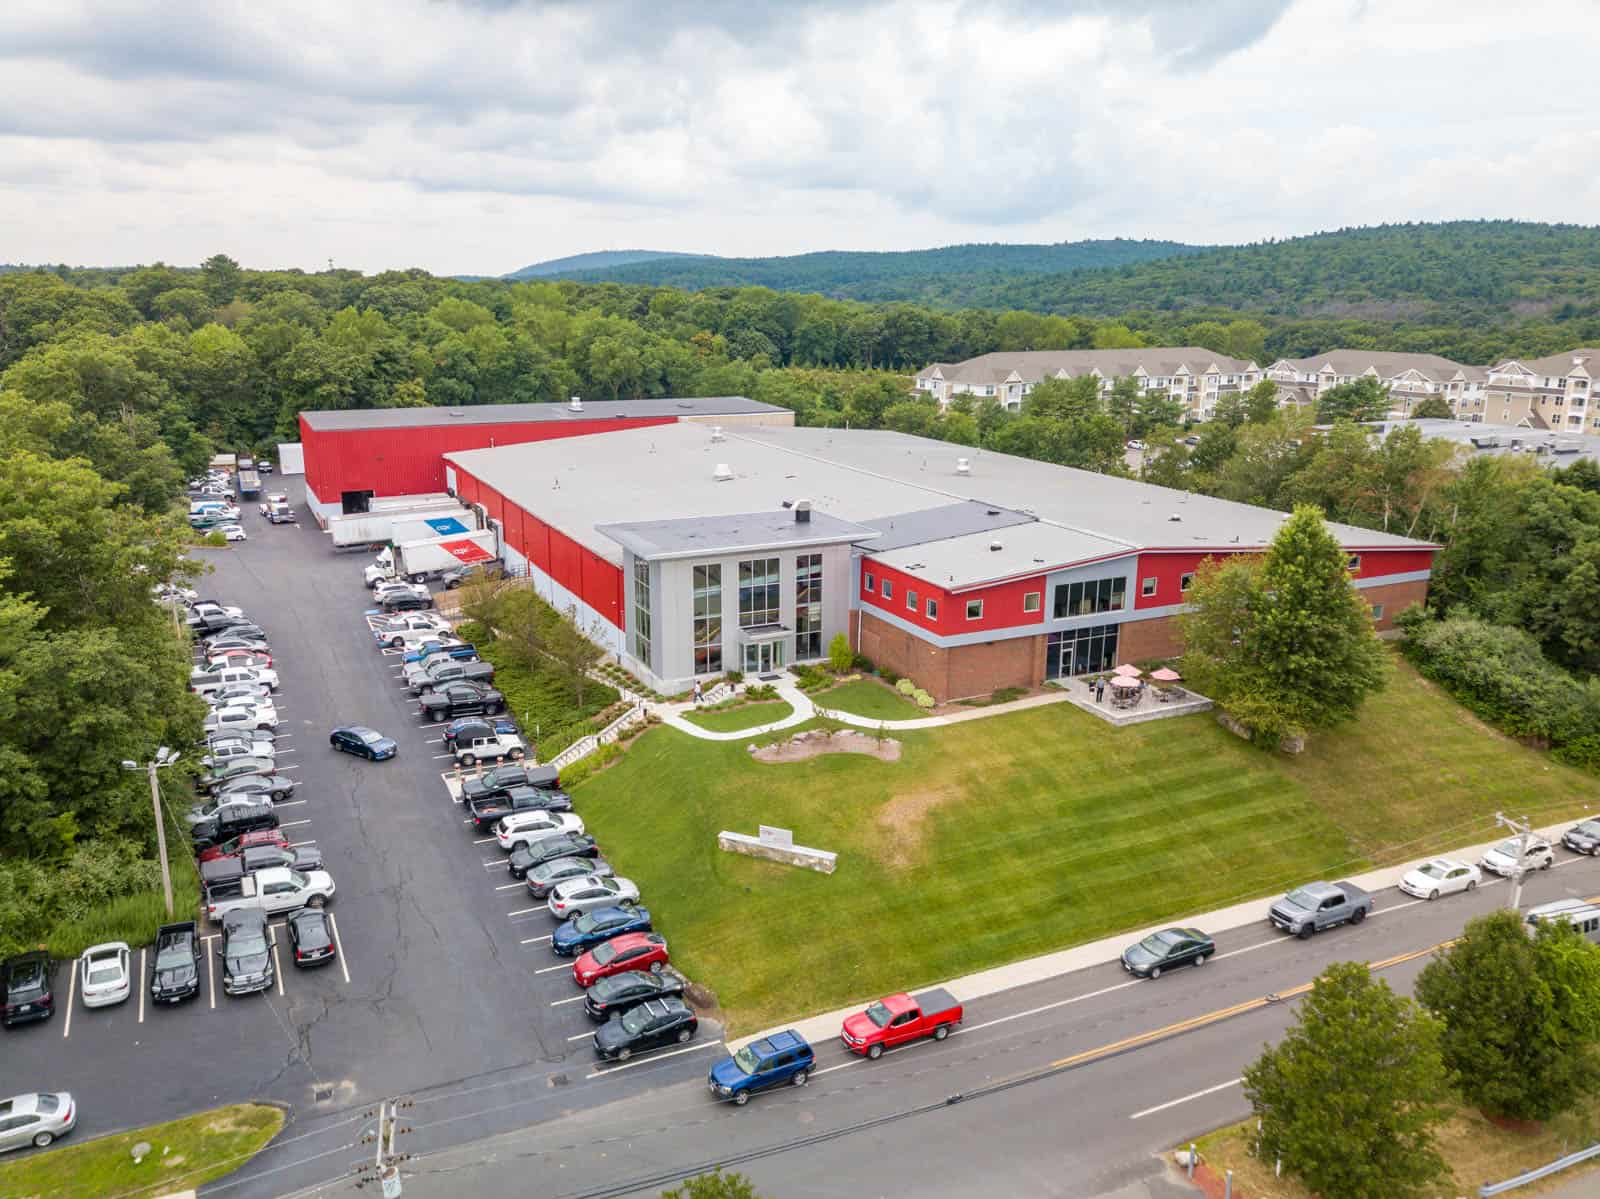 drone photo of front of red office building in Randolph, Massachusetts